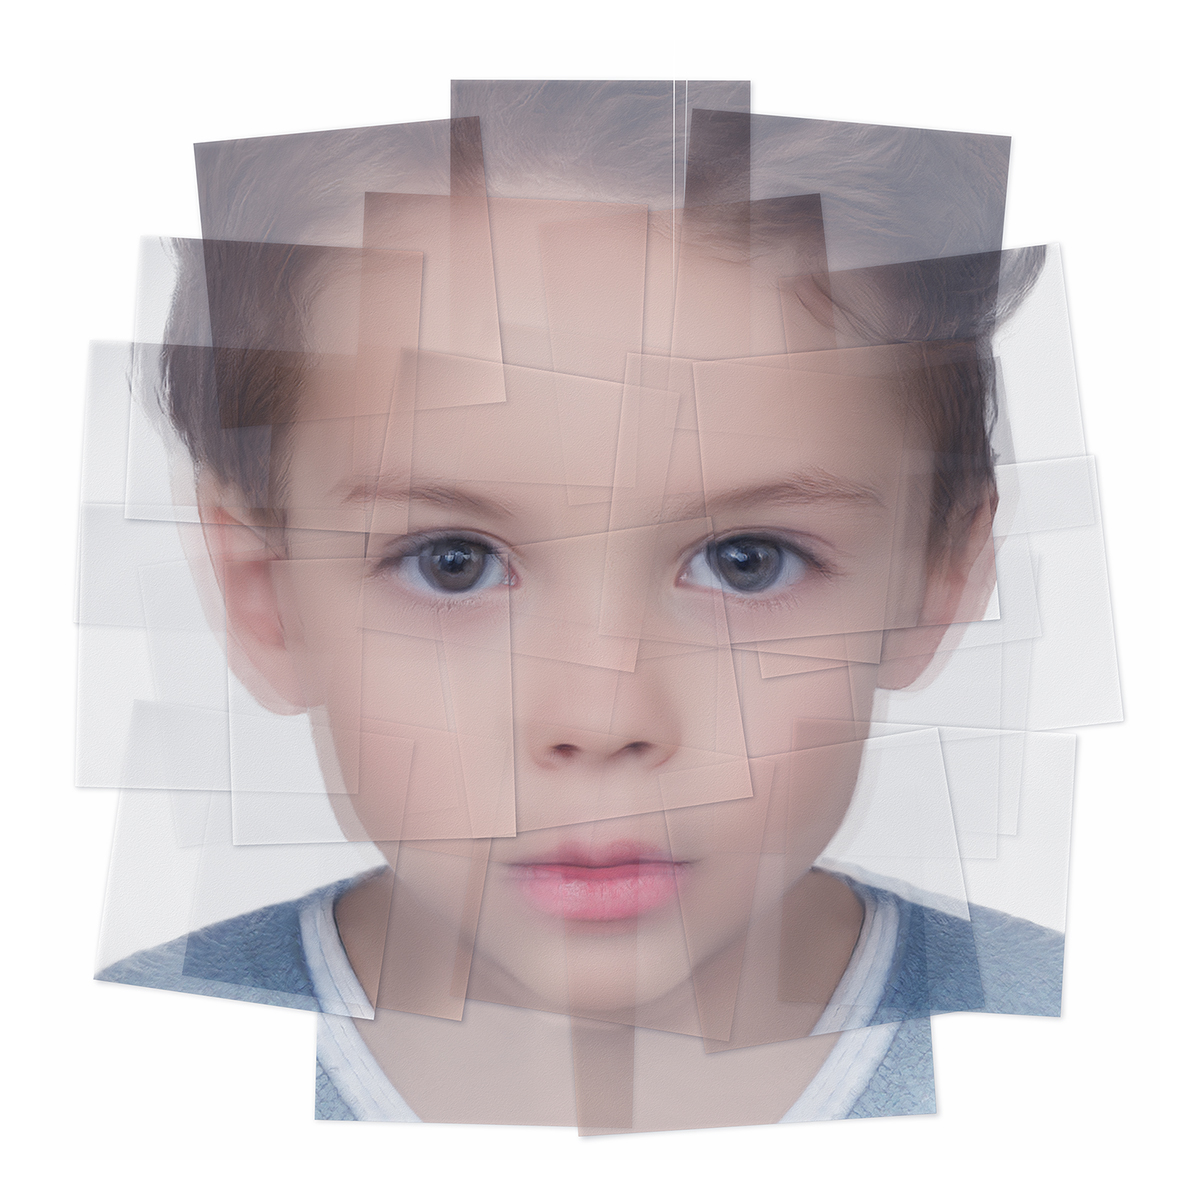 Generated Faces by Artificial Intelligence Kids 004 1 - 2019 - Generated Faces by Artificial Intelligence. Kids. V1